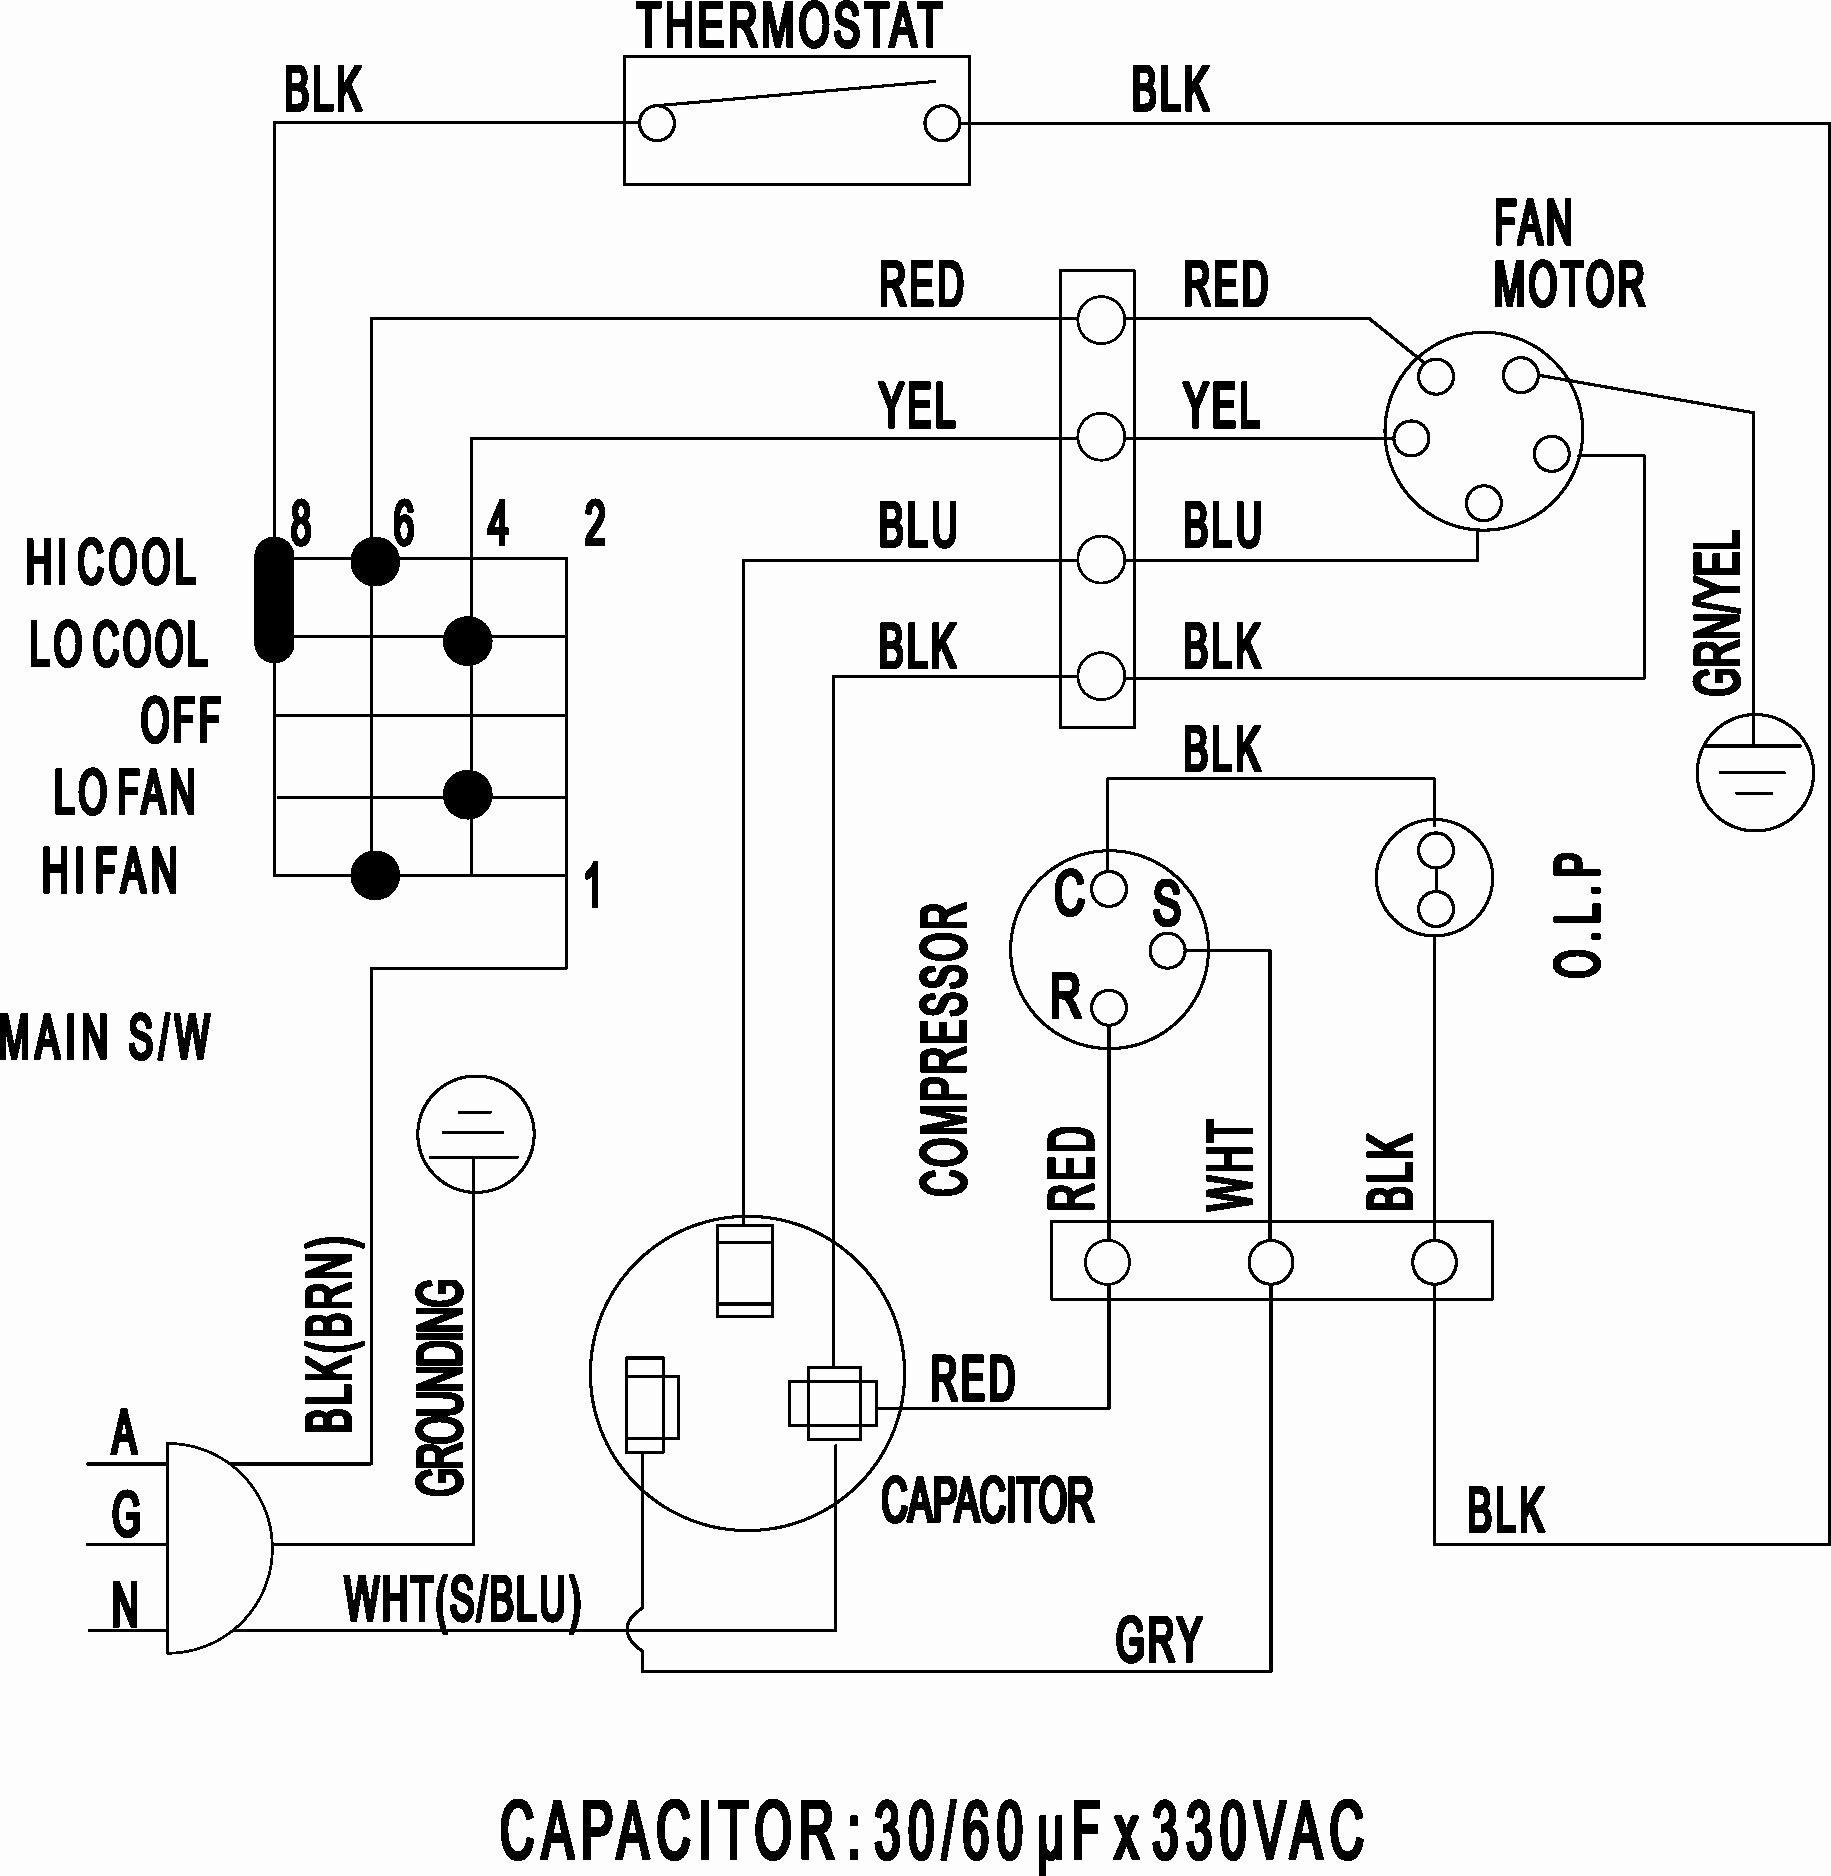 hight resolution of split air conditioner wiring diagram sample